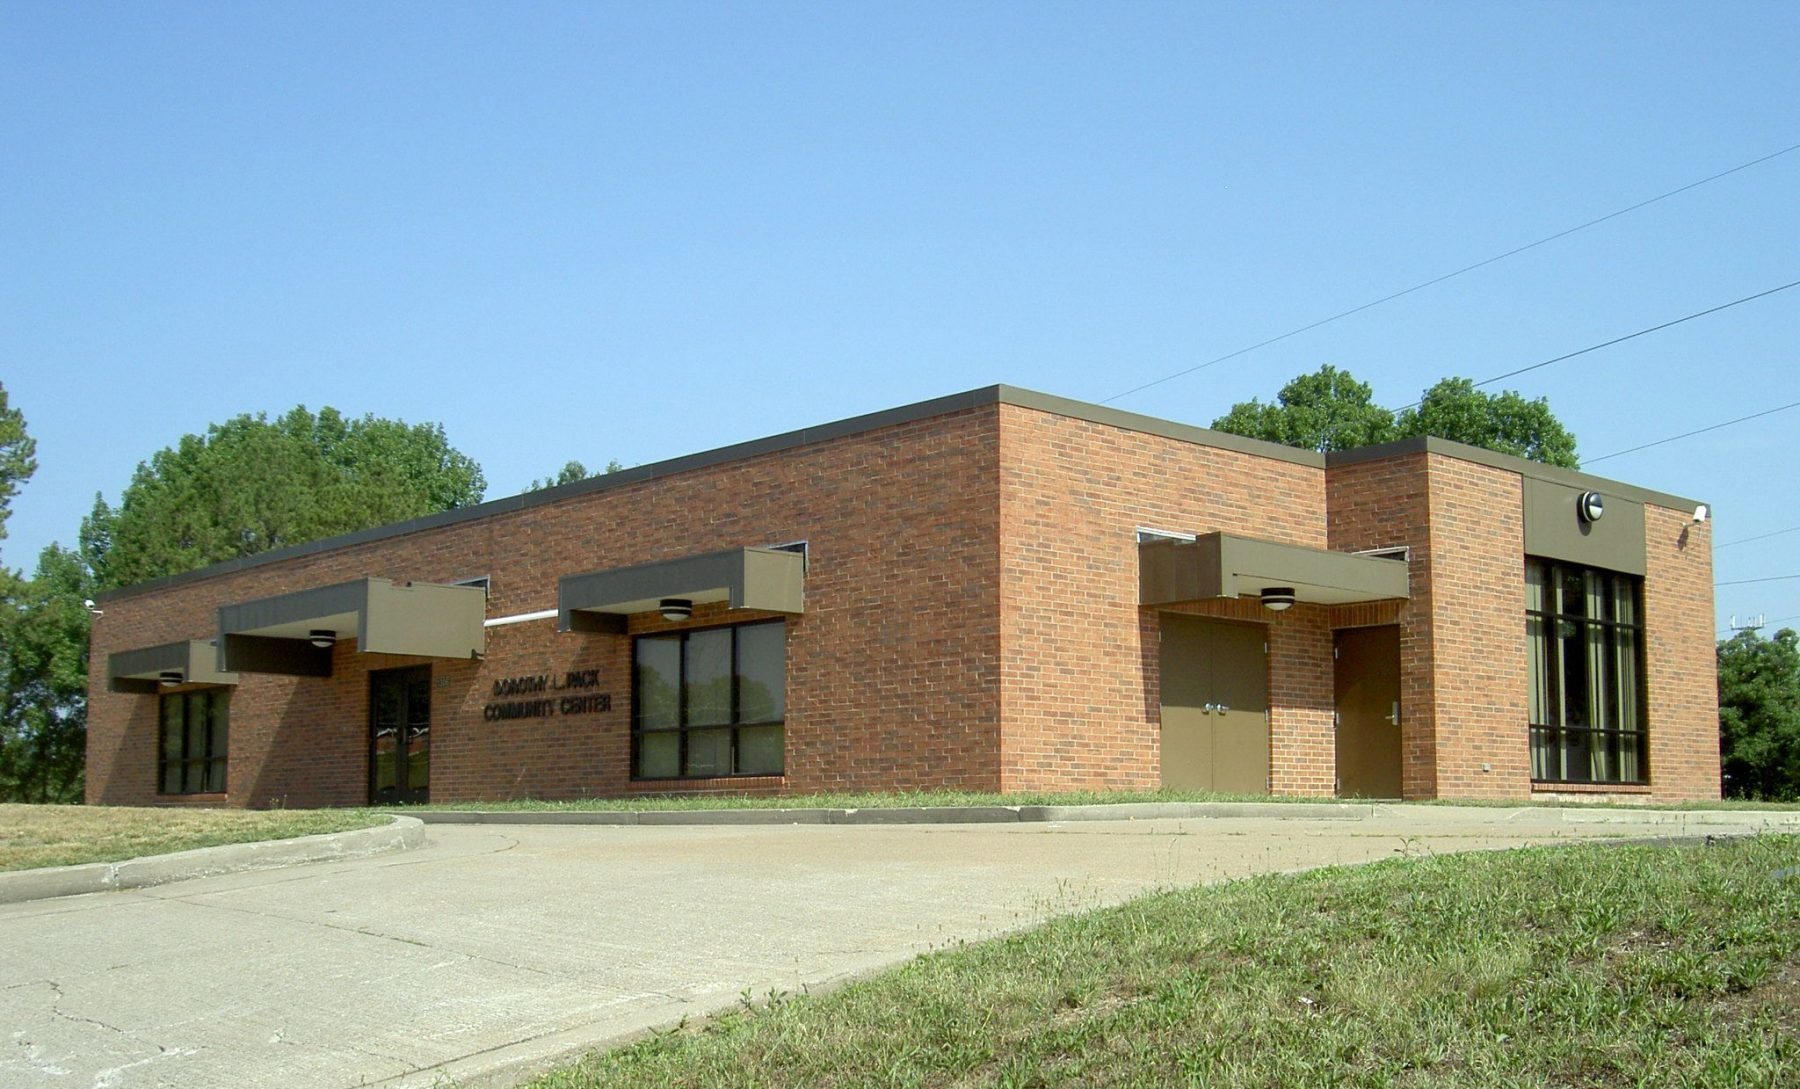 Housing Authority Community Center